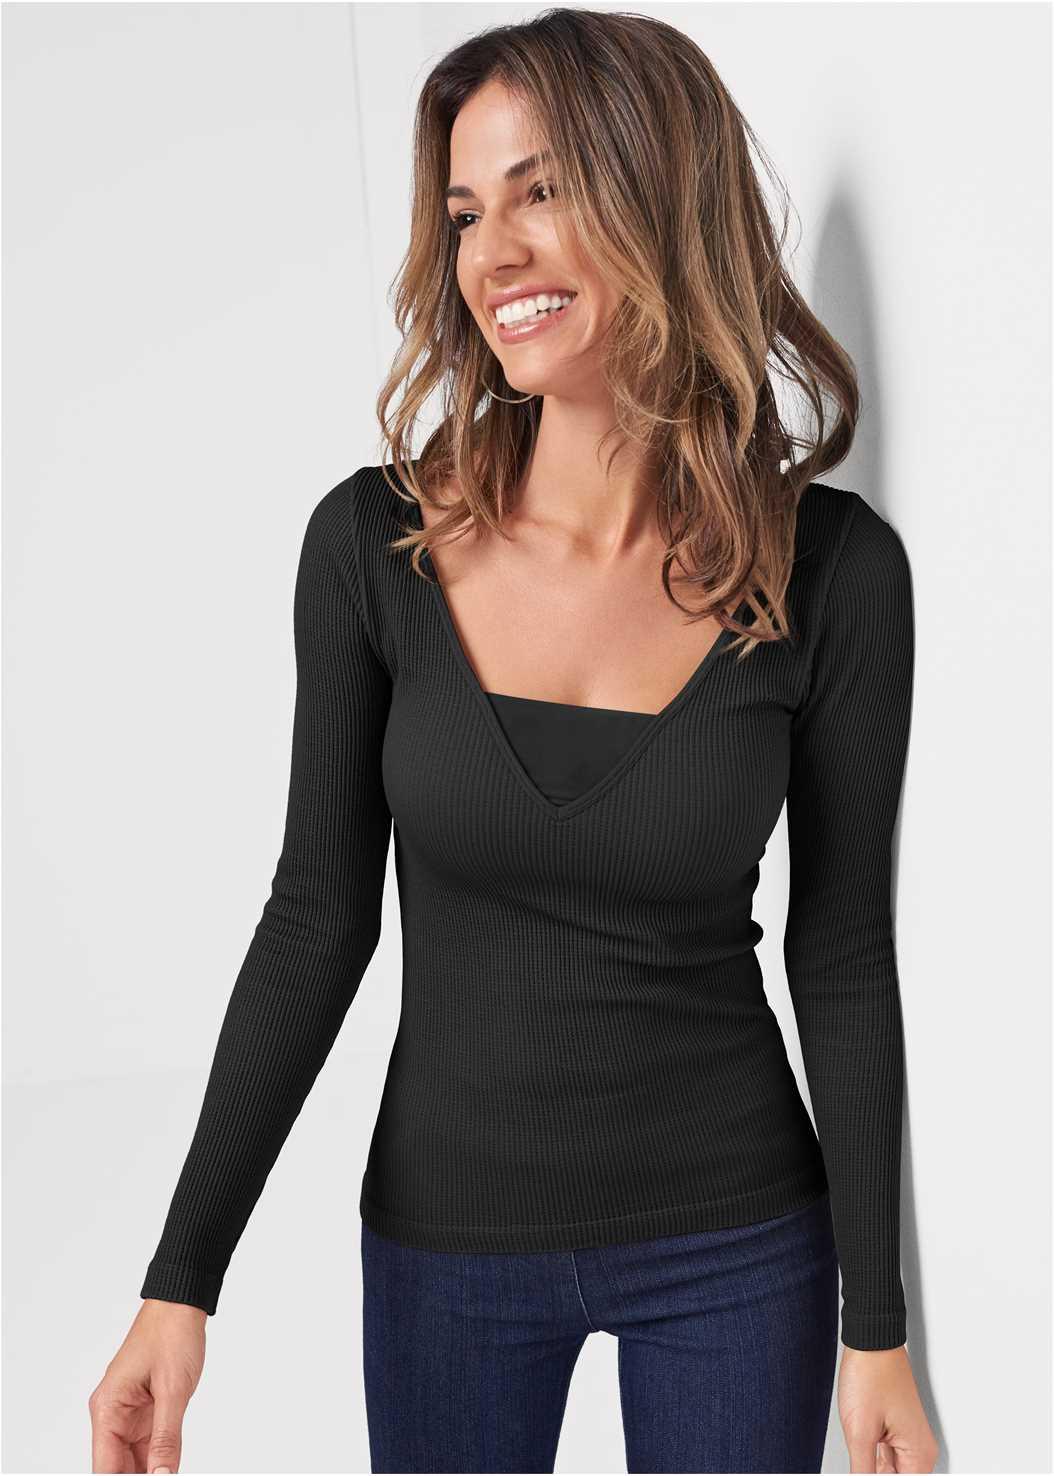 Ribbed Mesh Seamless Top,Mid Rise Slimming Stretch Jeggings